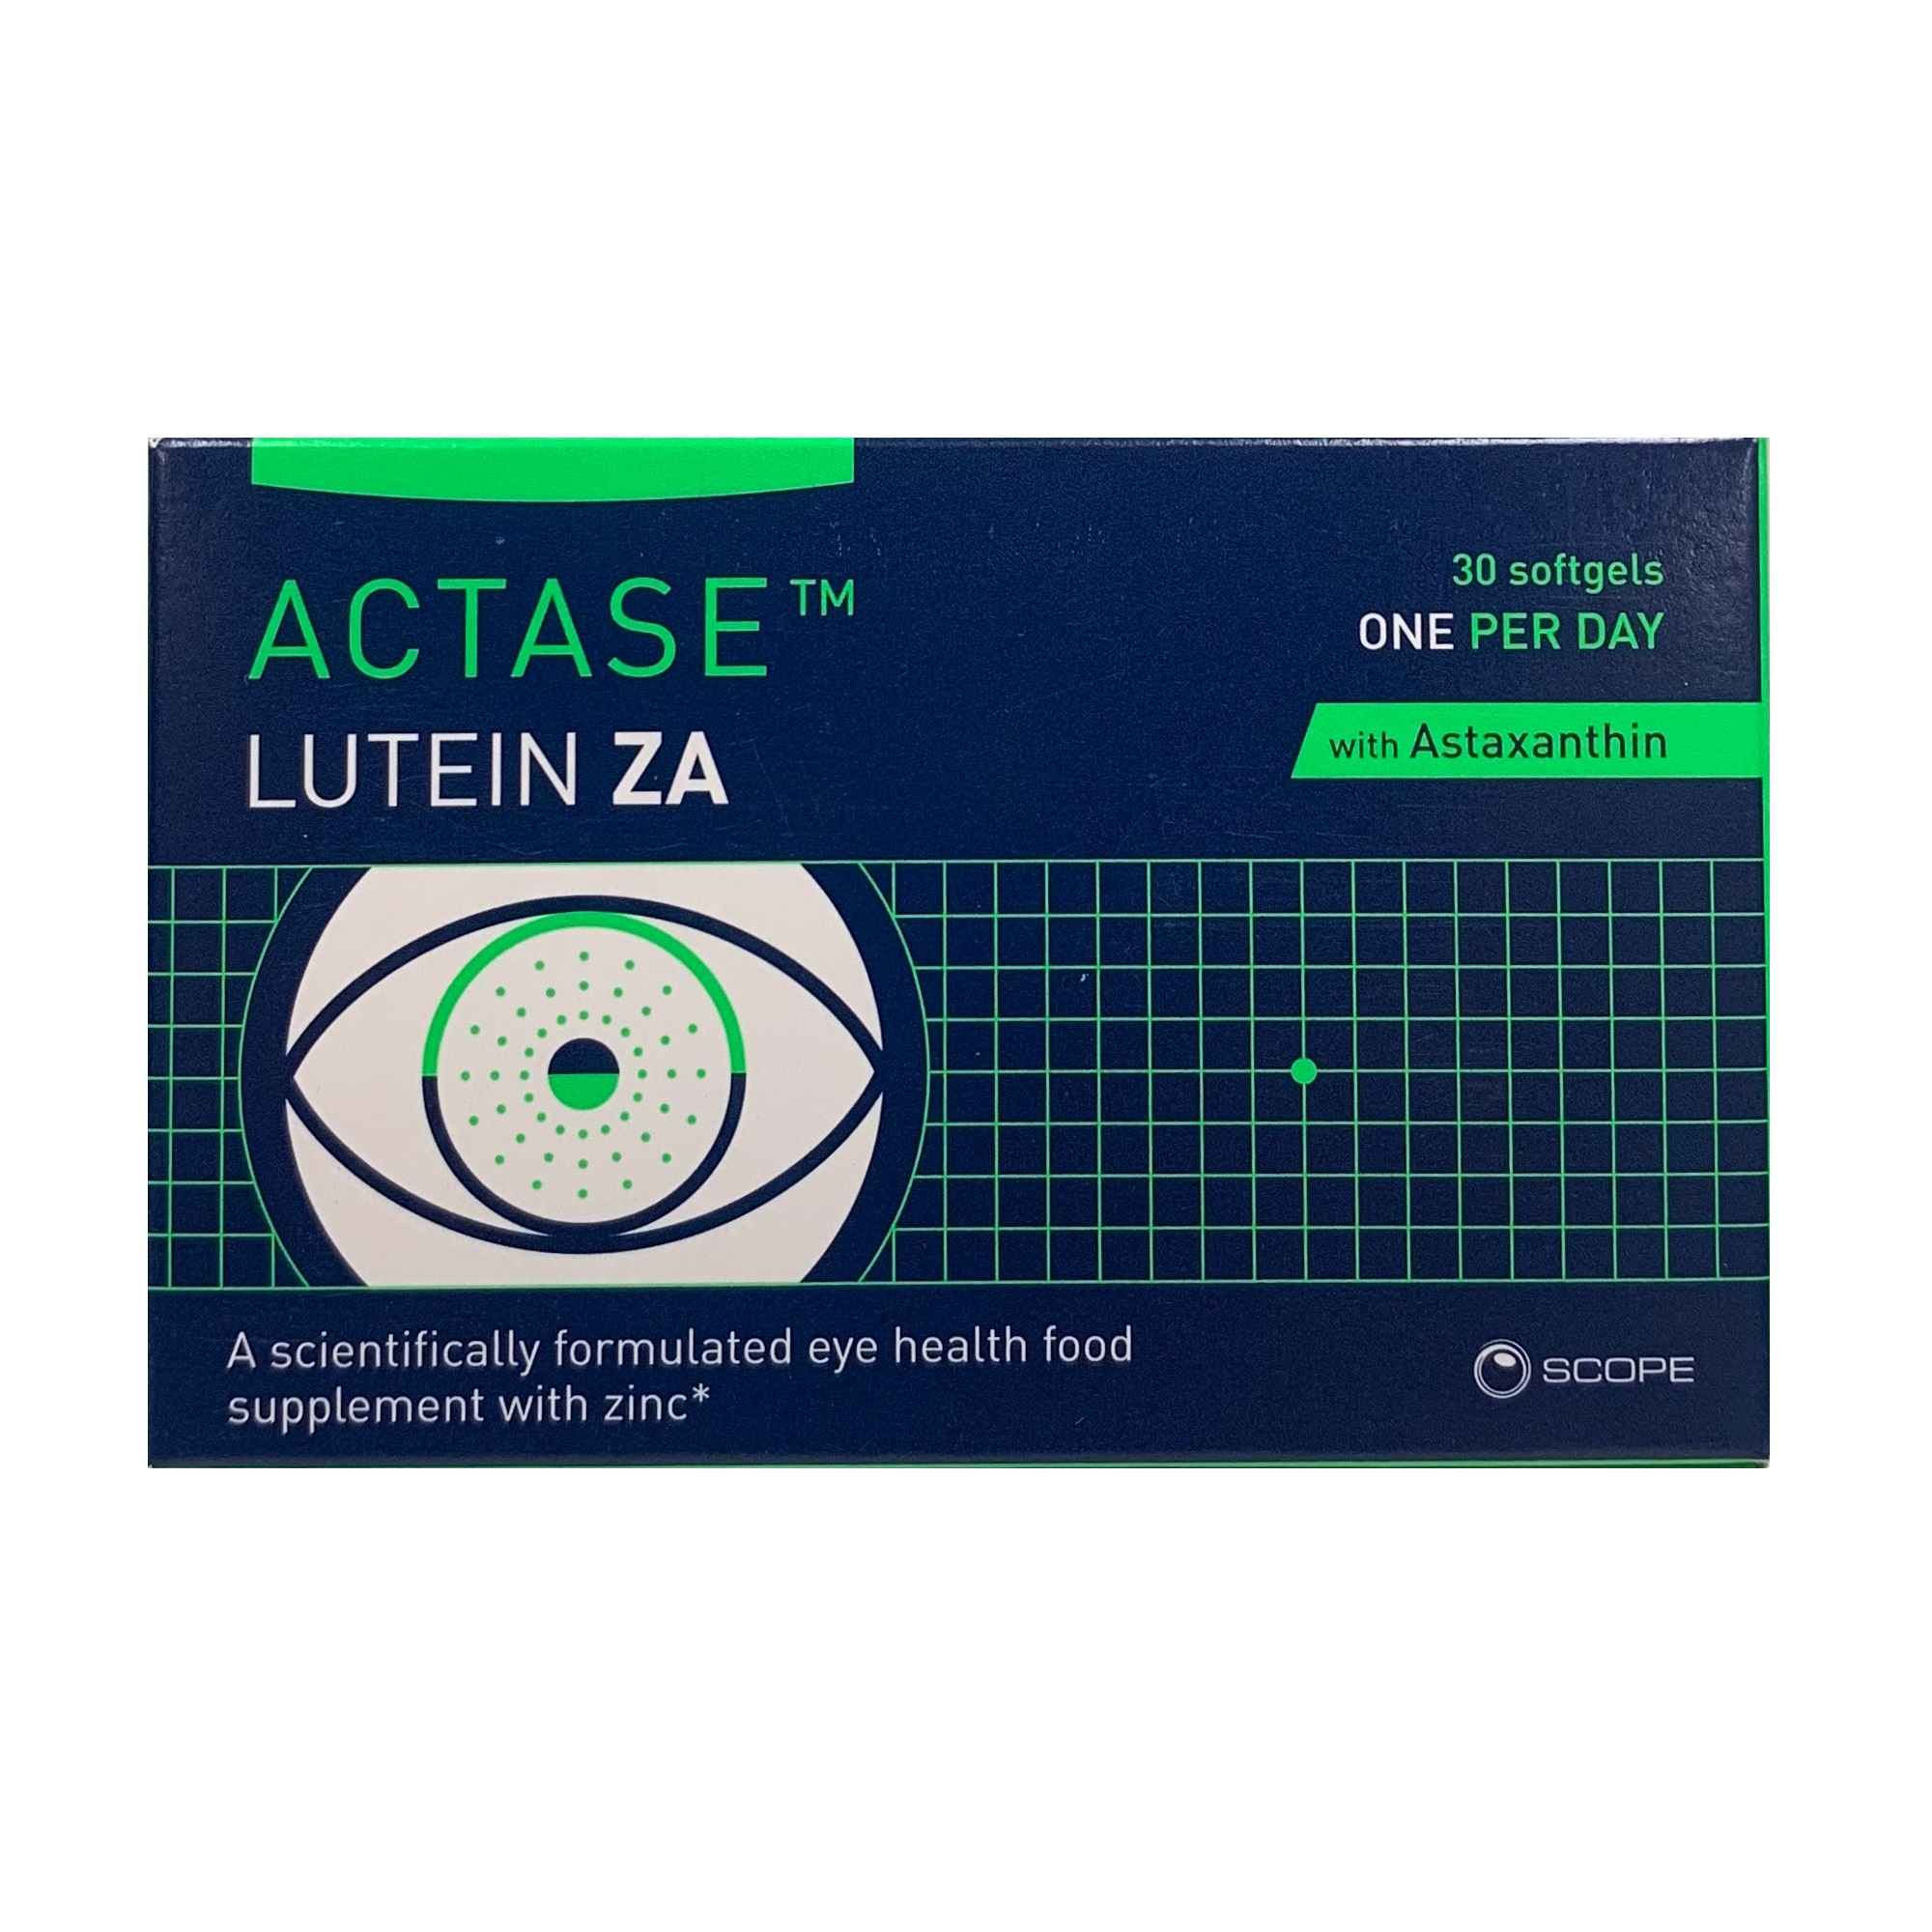 ACTASE LUTEIN ZA SOFTGELS 30 PACK (30's)